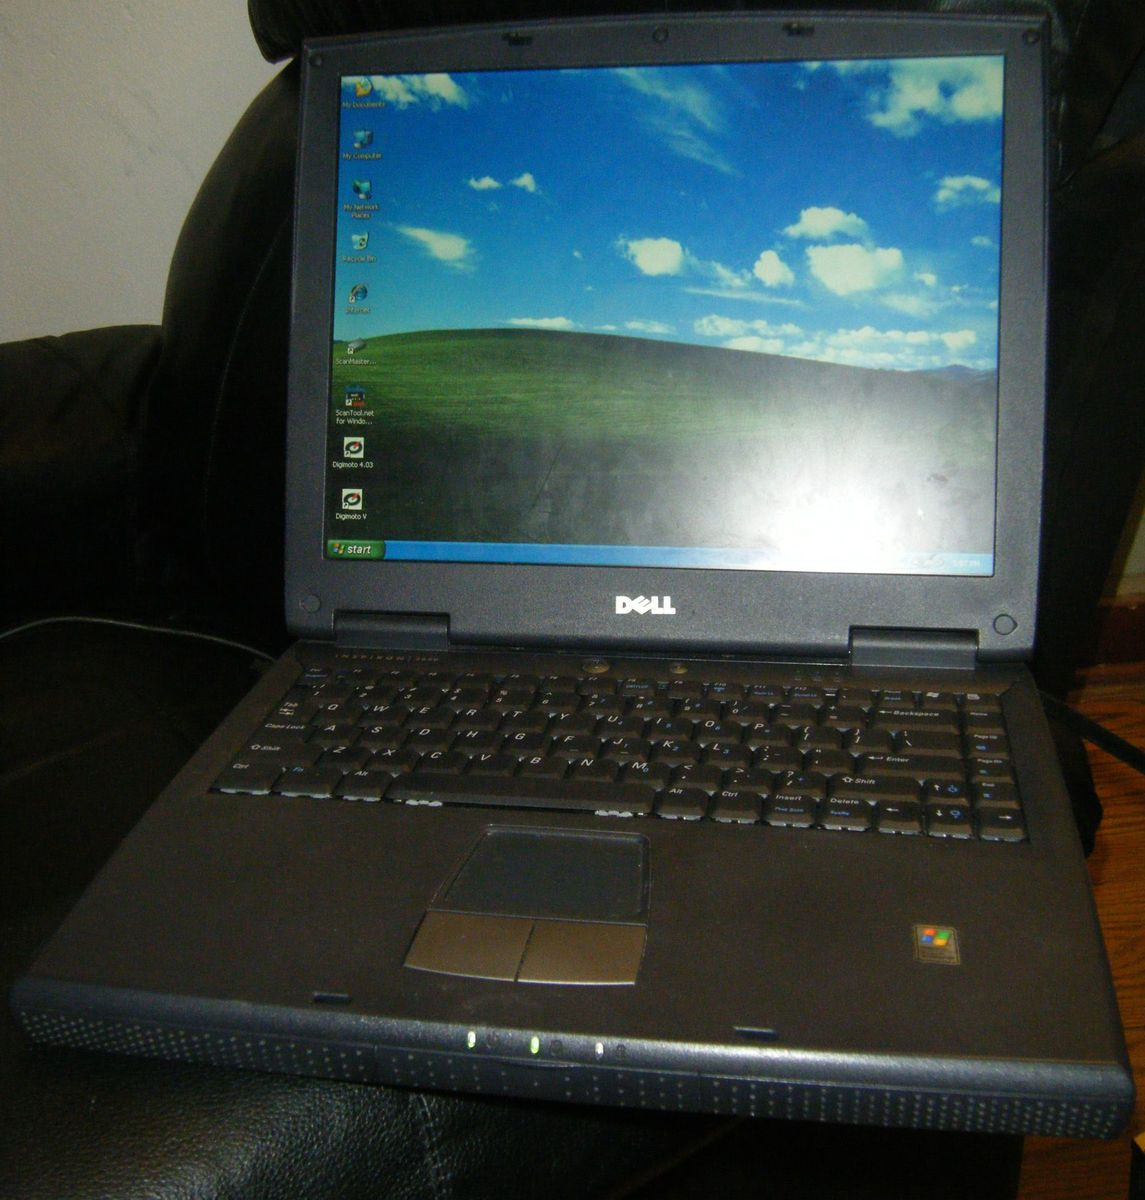 Dell Inspiron 2650 Laptop Notebook